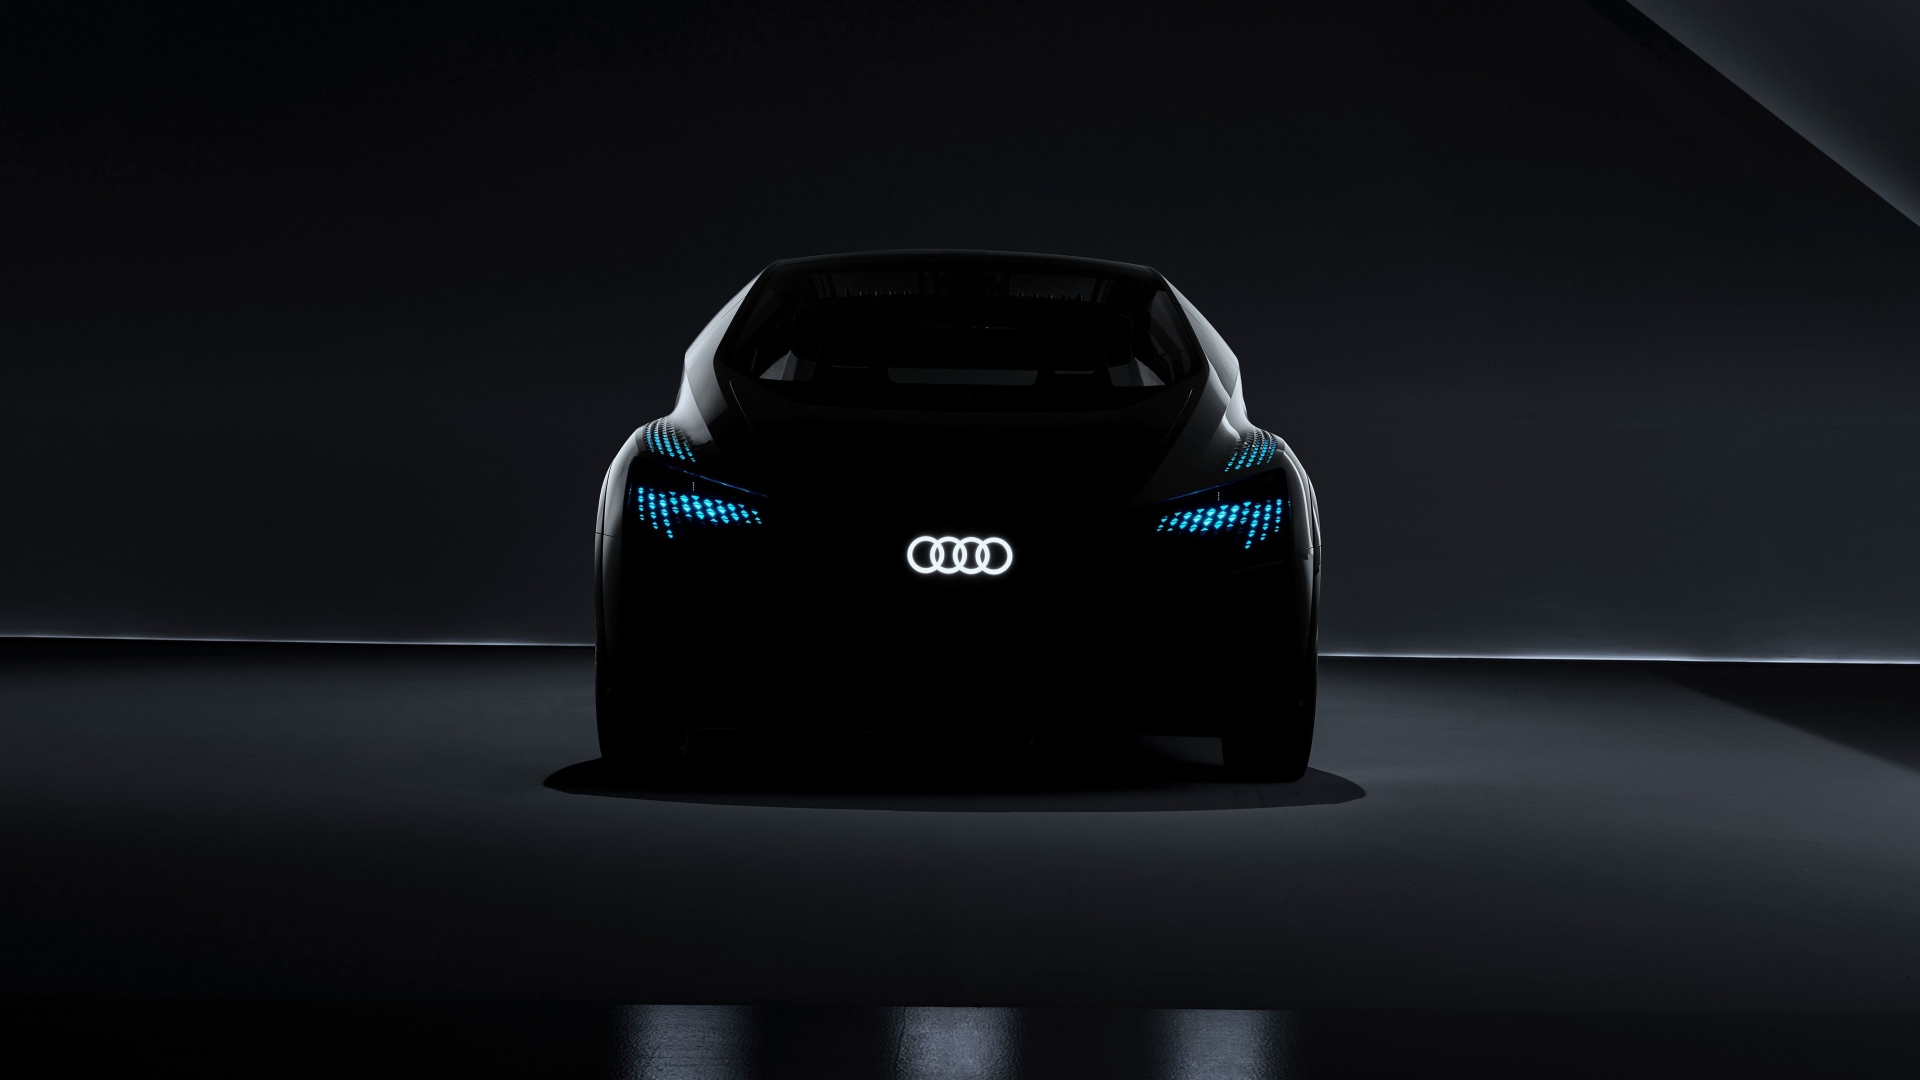 1920x1080 Audi Ai Me 1080p Laptop Full Hd Wallpaper Hd Cars 4k Wallpapers Images Photos And Background